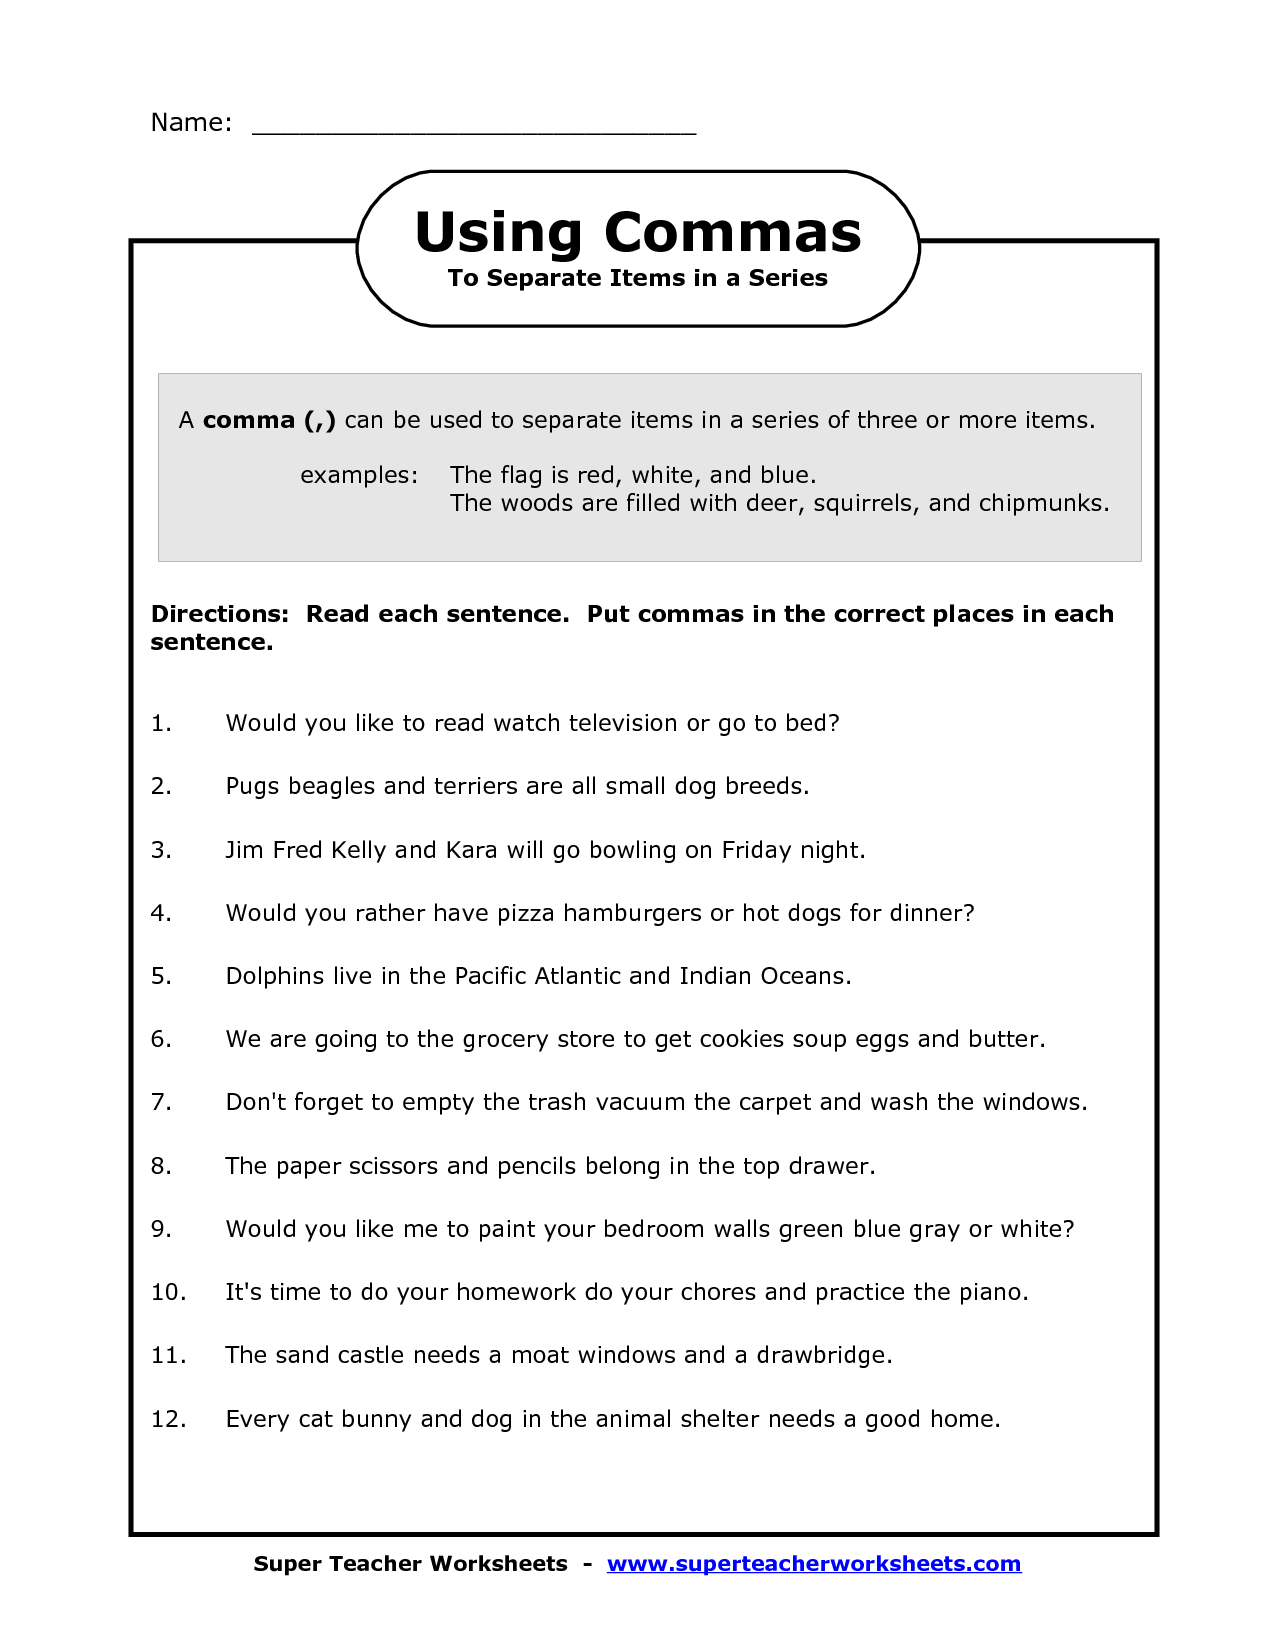 worksheet Comma Practice Worksheet comma in a series worksheets image commas worksheet worksheet